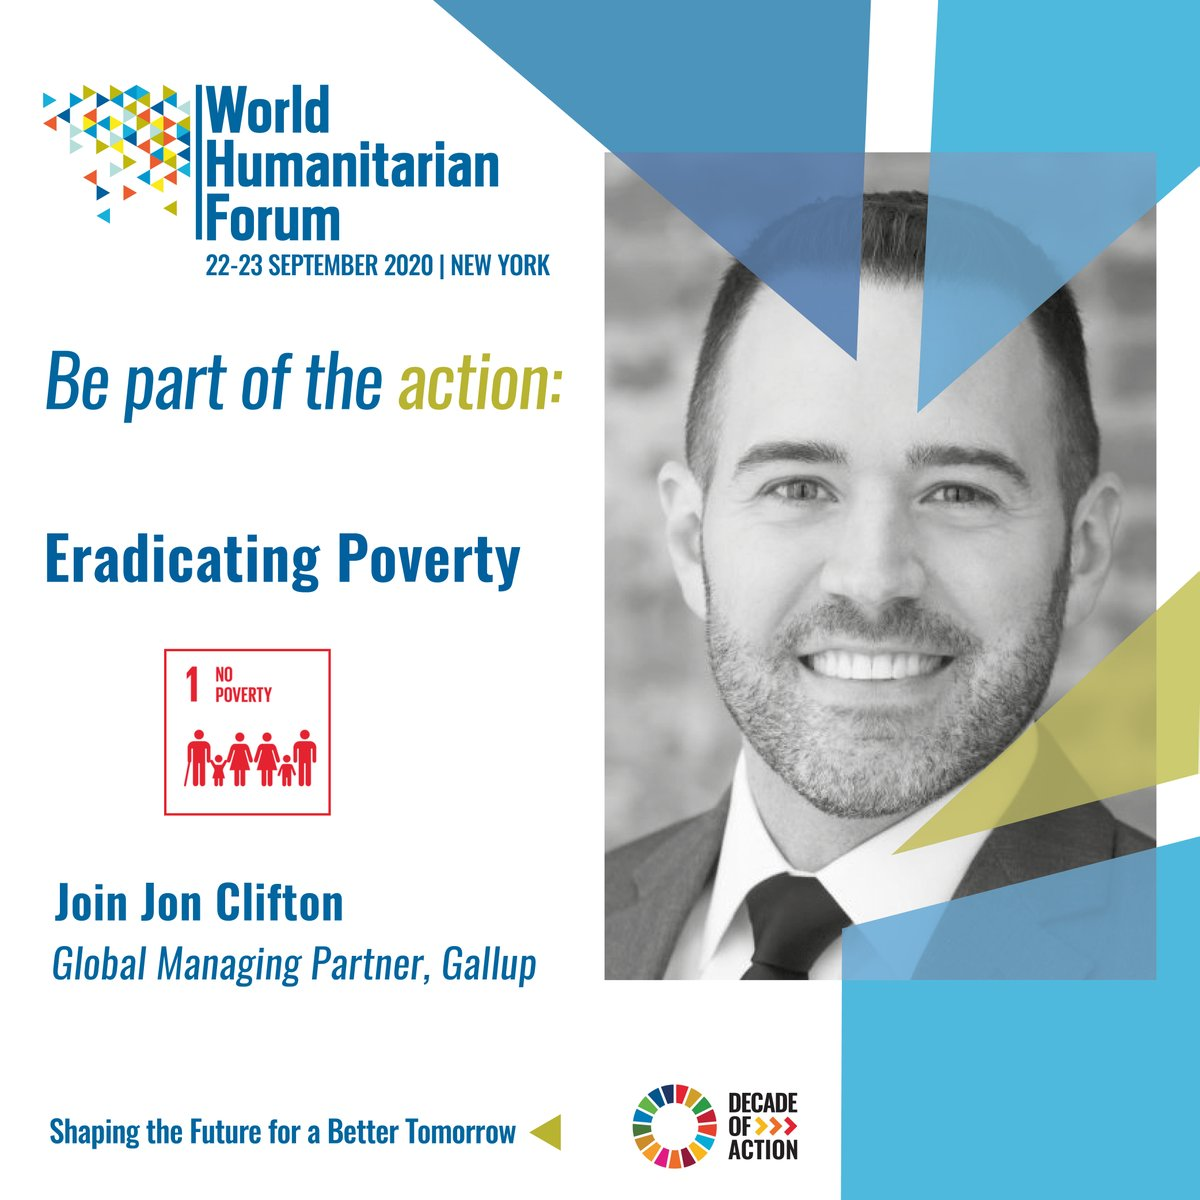 Join Gallup's Global Managing Partner, @JonCliftonDC, for a discussion on eradicating poverty at @WHForumLondon on Tuesday, September 22nd. https://t.co/u1ErqF4E6h #WHFNY2020 https://t.co/mPOCUH4NsT